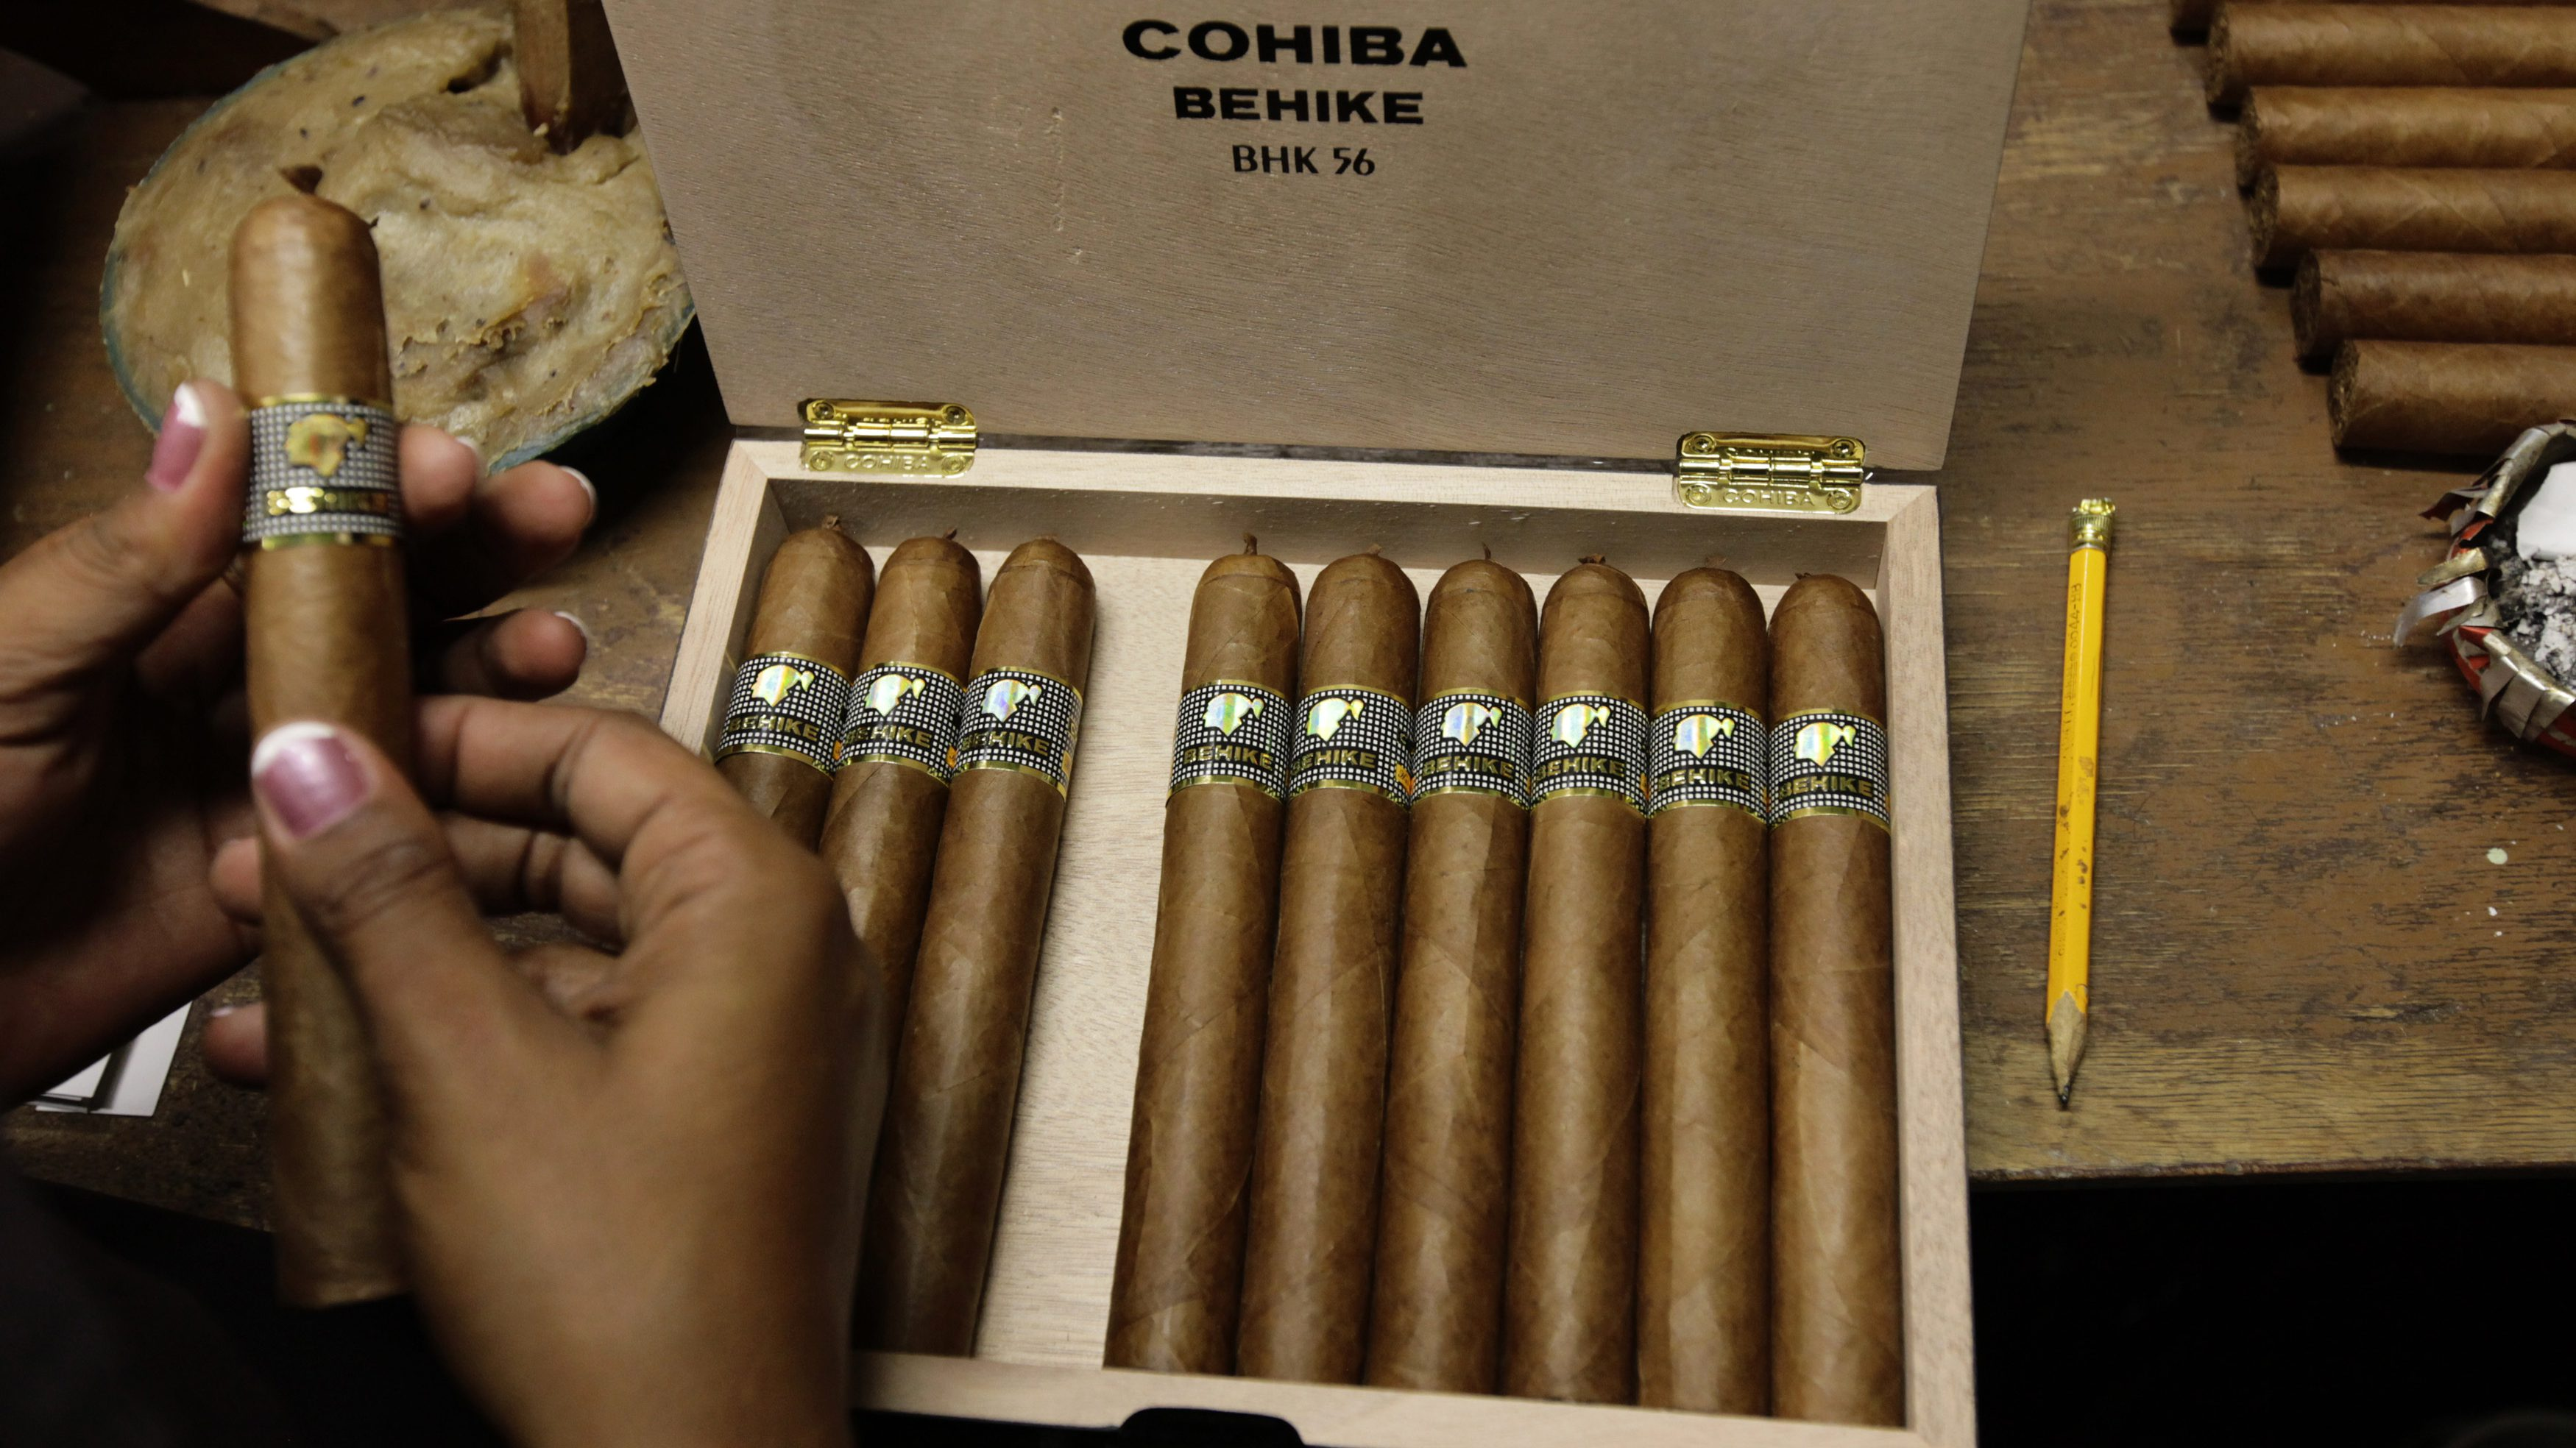 A woman fills a box of high end cigars at the Cohiba factory in Havana.